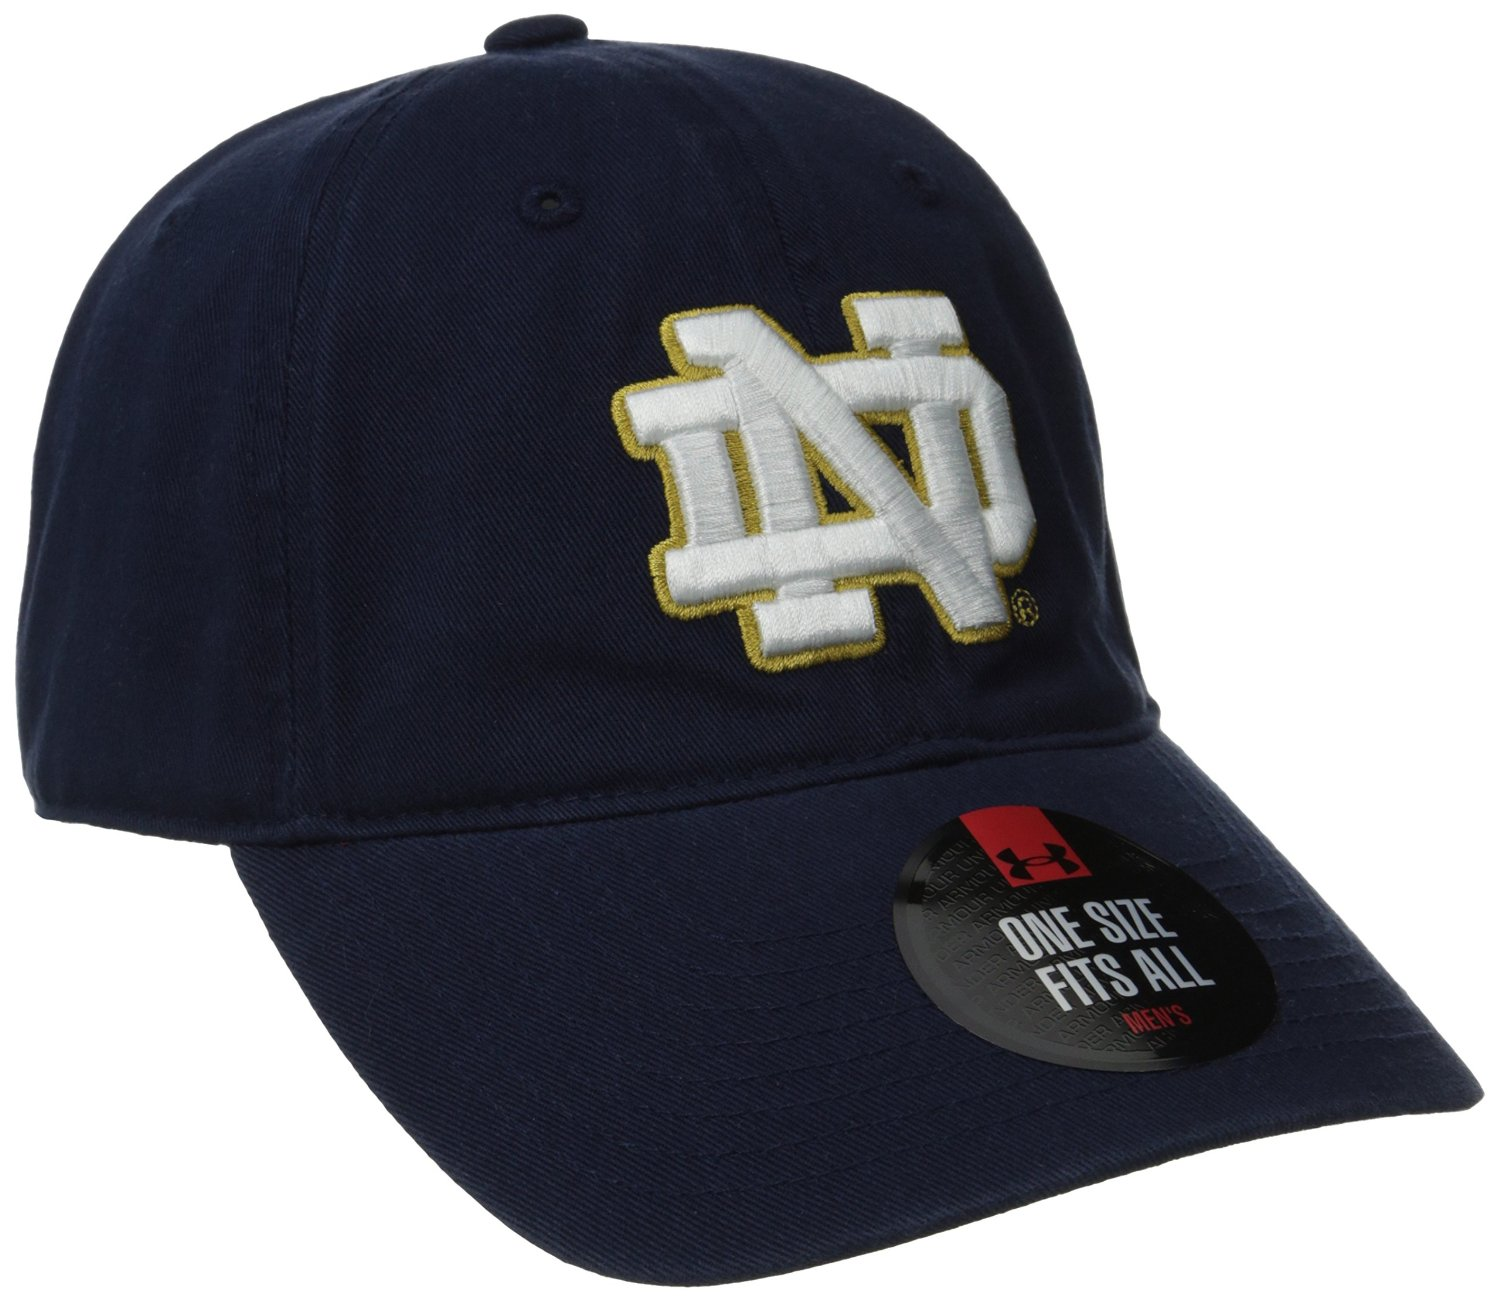 a1376af2361 Under Armour NCAA Notre Dame Fighting Irish Relaxed Cotton Adjustable  Hat Cap